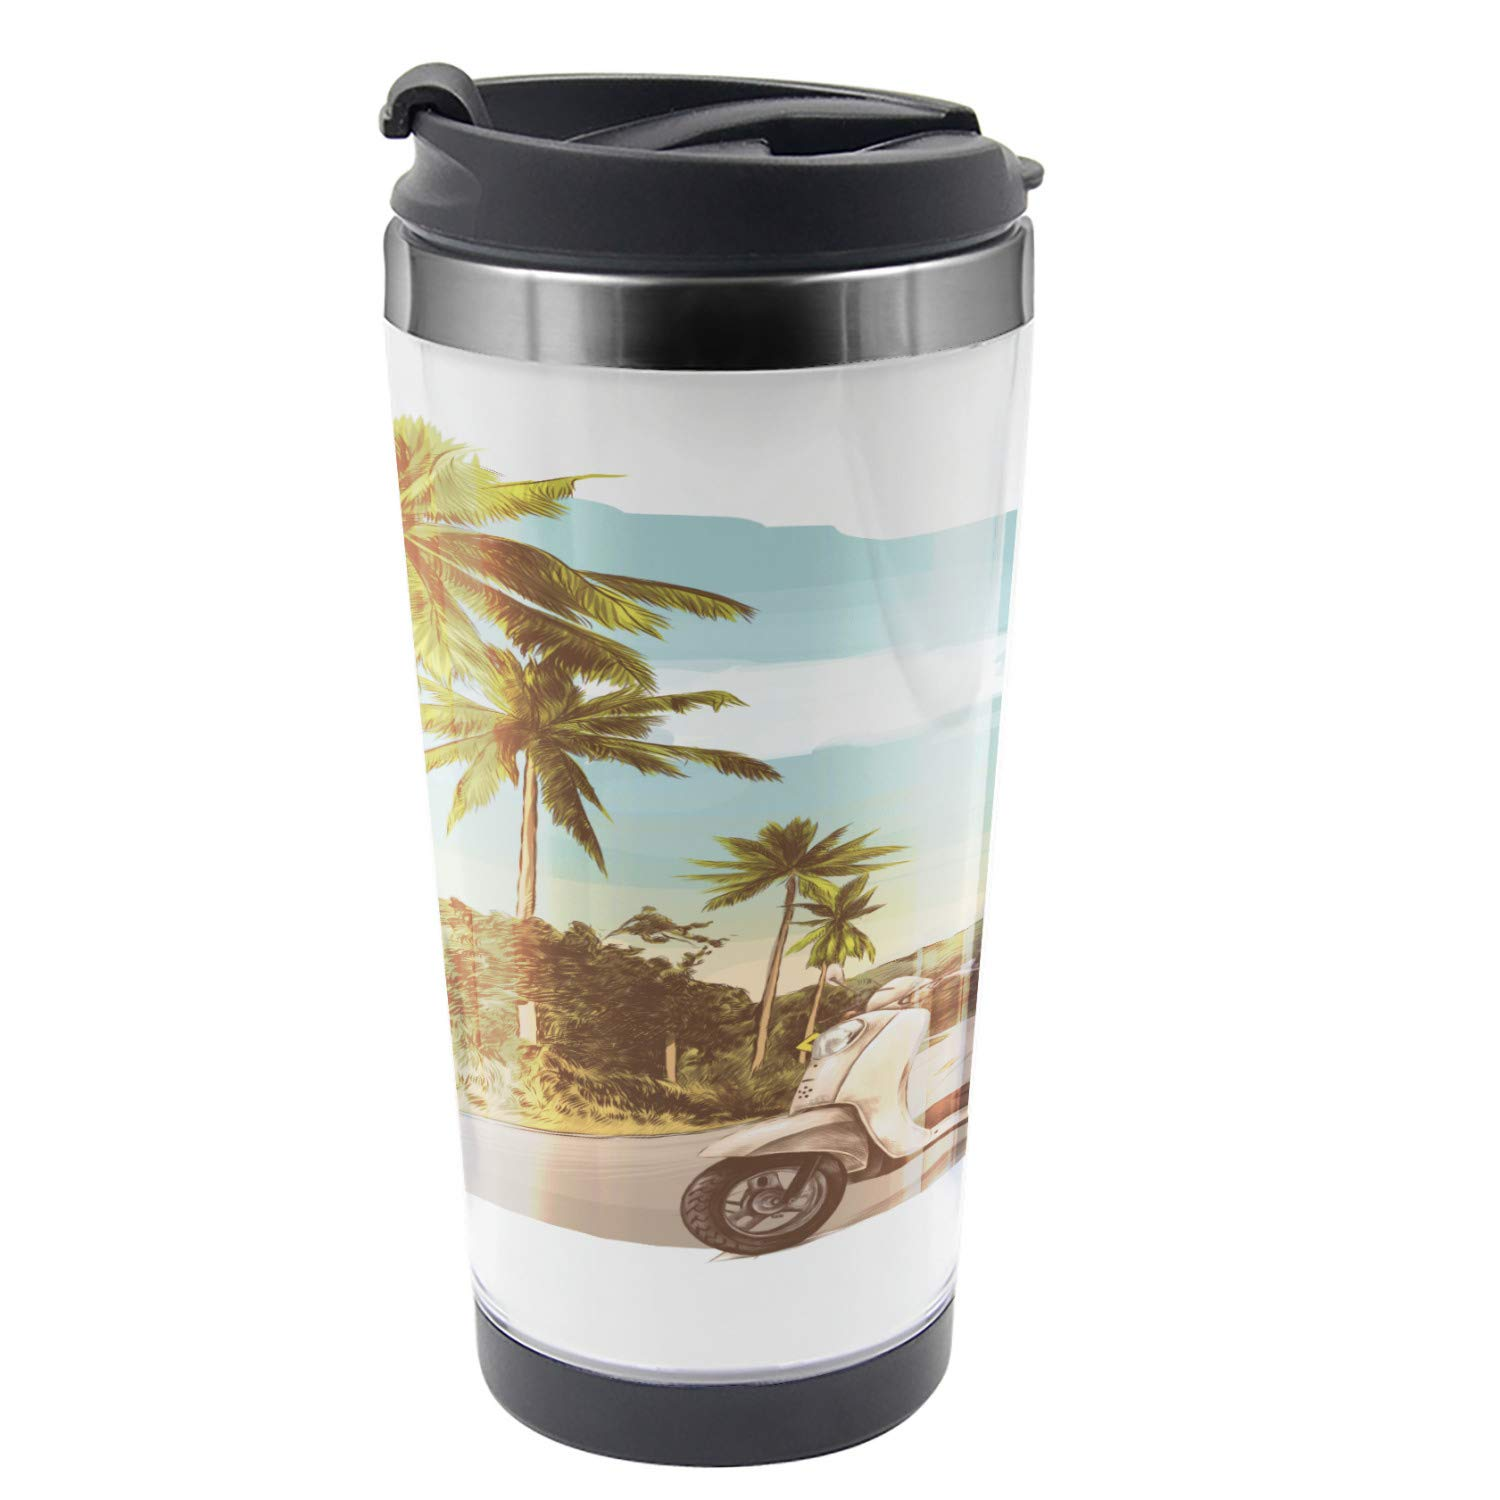 Ambesonne Retro Travel Mug, Vintage Scooter in Jungle, Steel Thermal Cup, 16 oz, Multicolor by Ambesonne